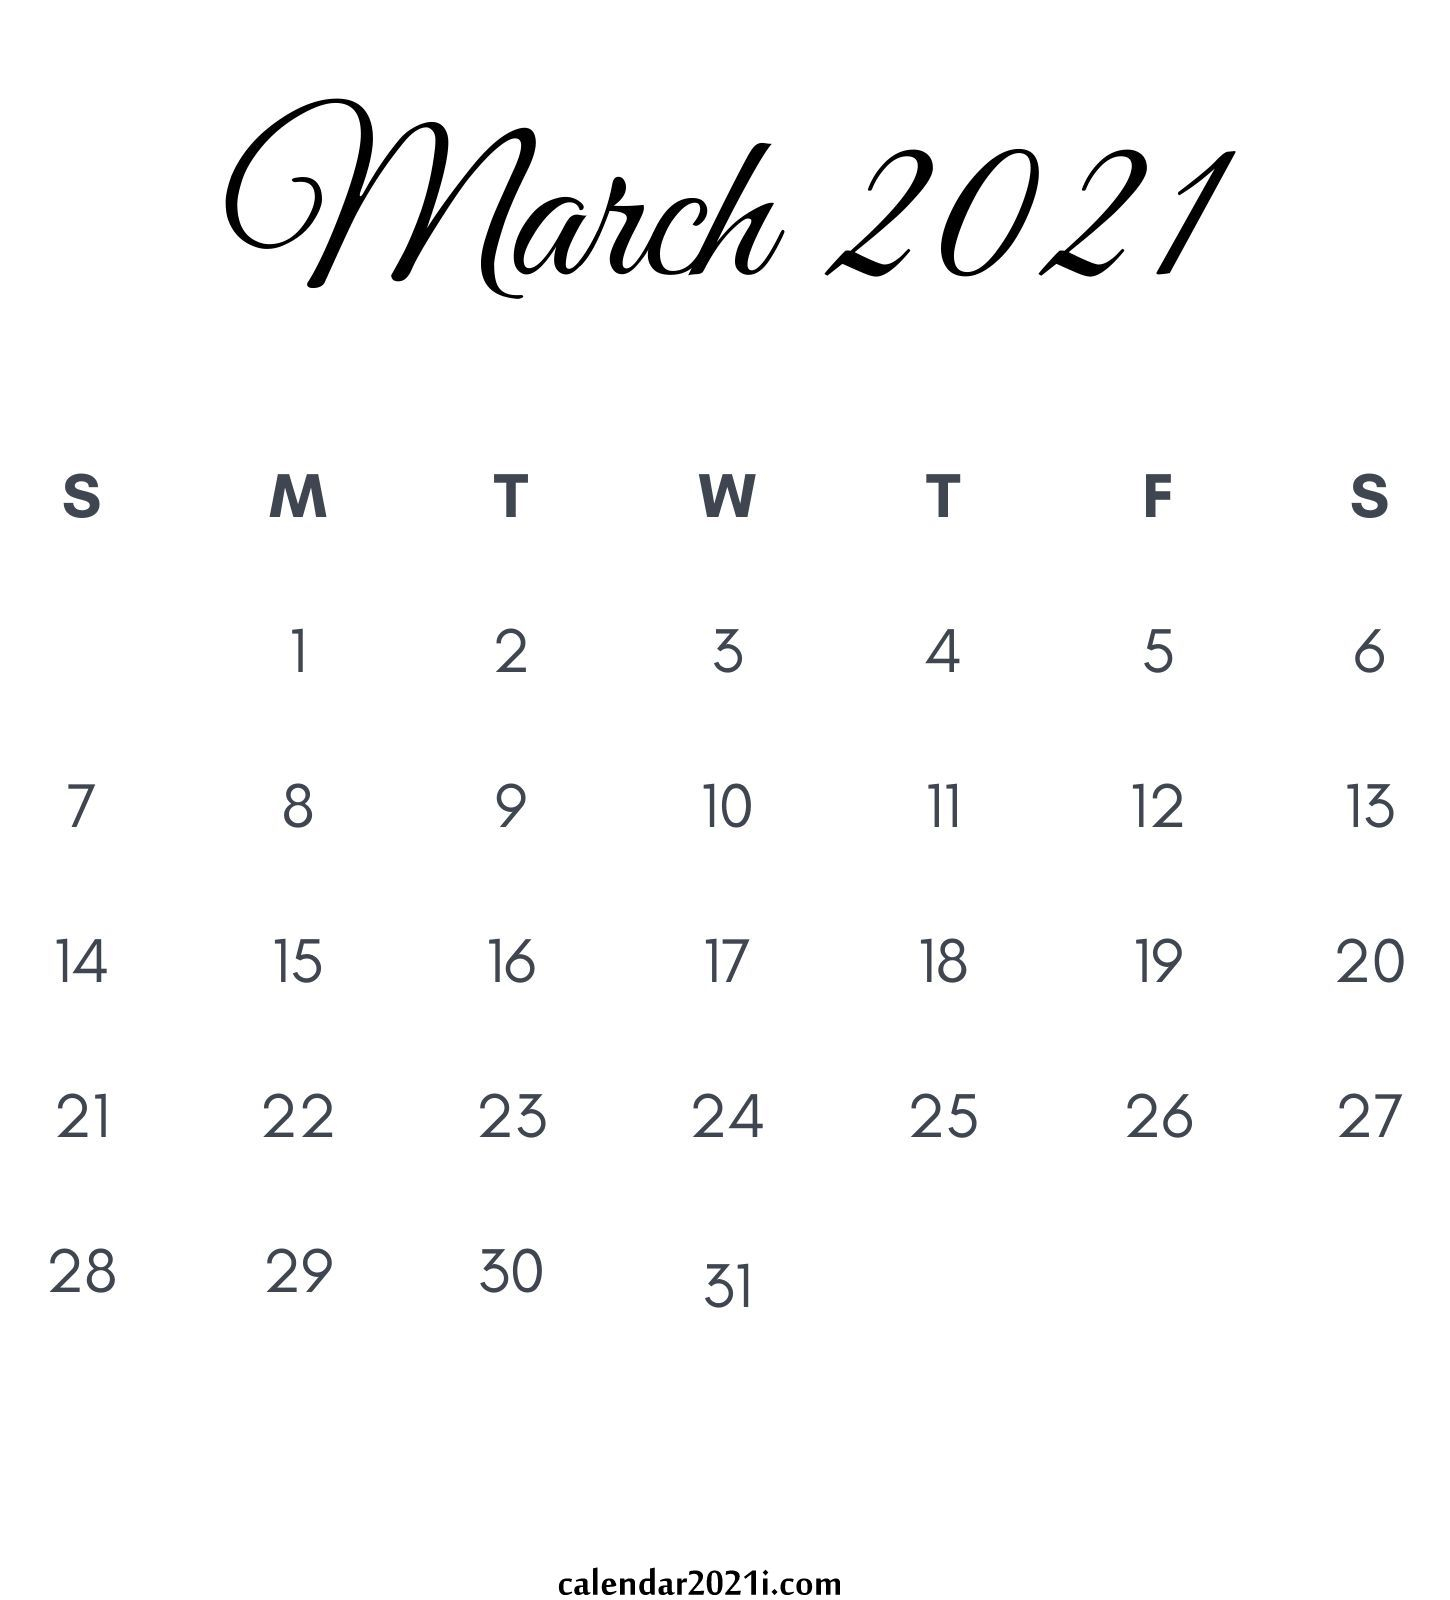 March 2021 Calendar: Printable, Floral, Holidays, Wallpaper